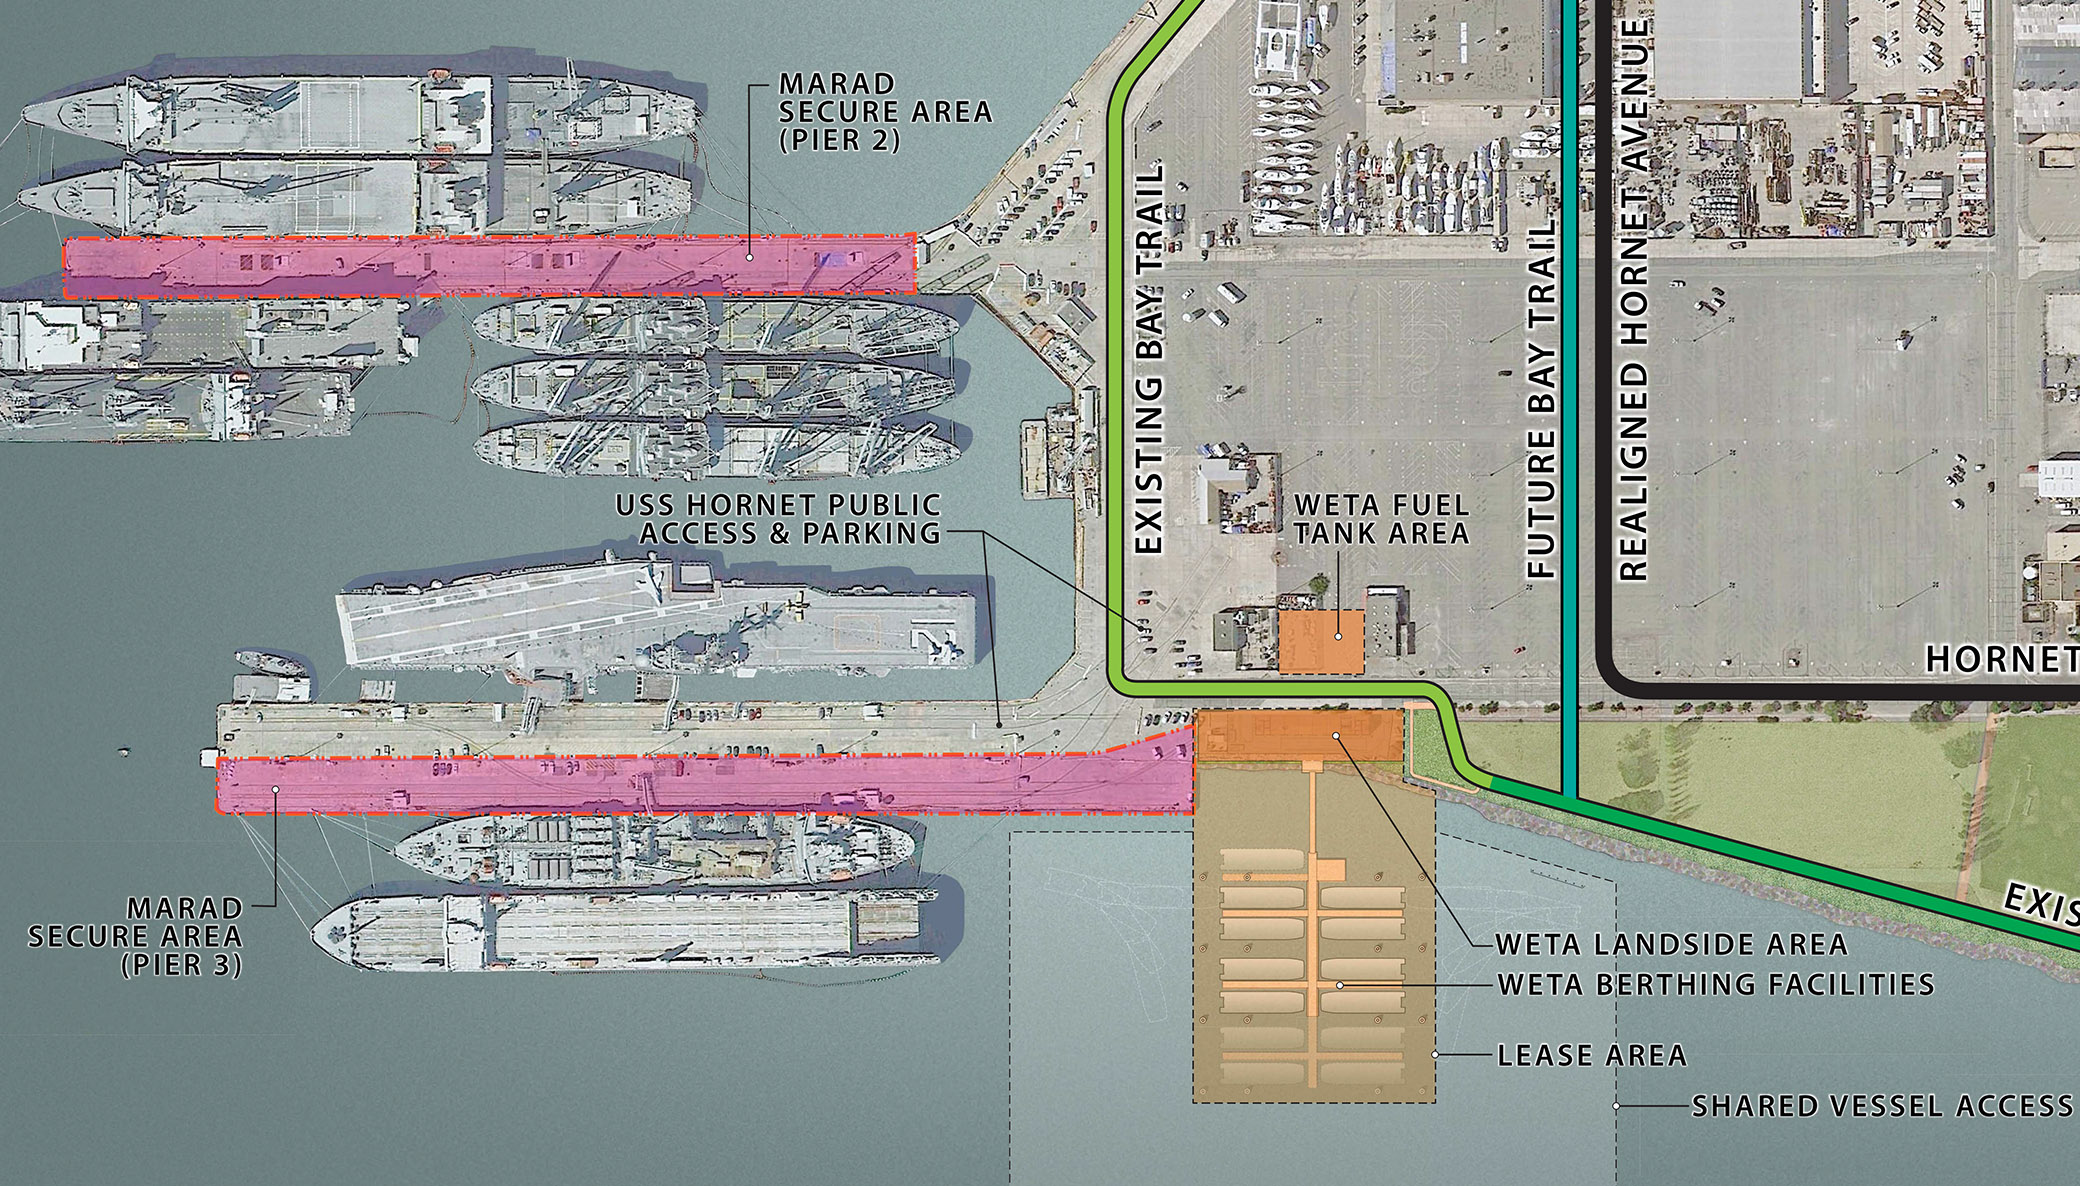 City of Alameda photo -  WETA's plans for its maintenance facility at Alamada Point will do away with a harbor seal haul out and place fuel tanks near an existing electric substation. Both are show in orange on this aerial view.